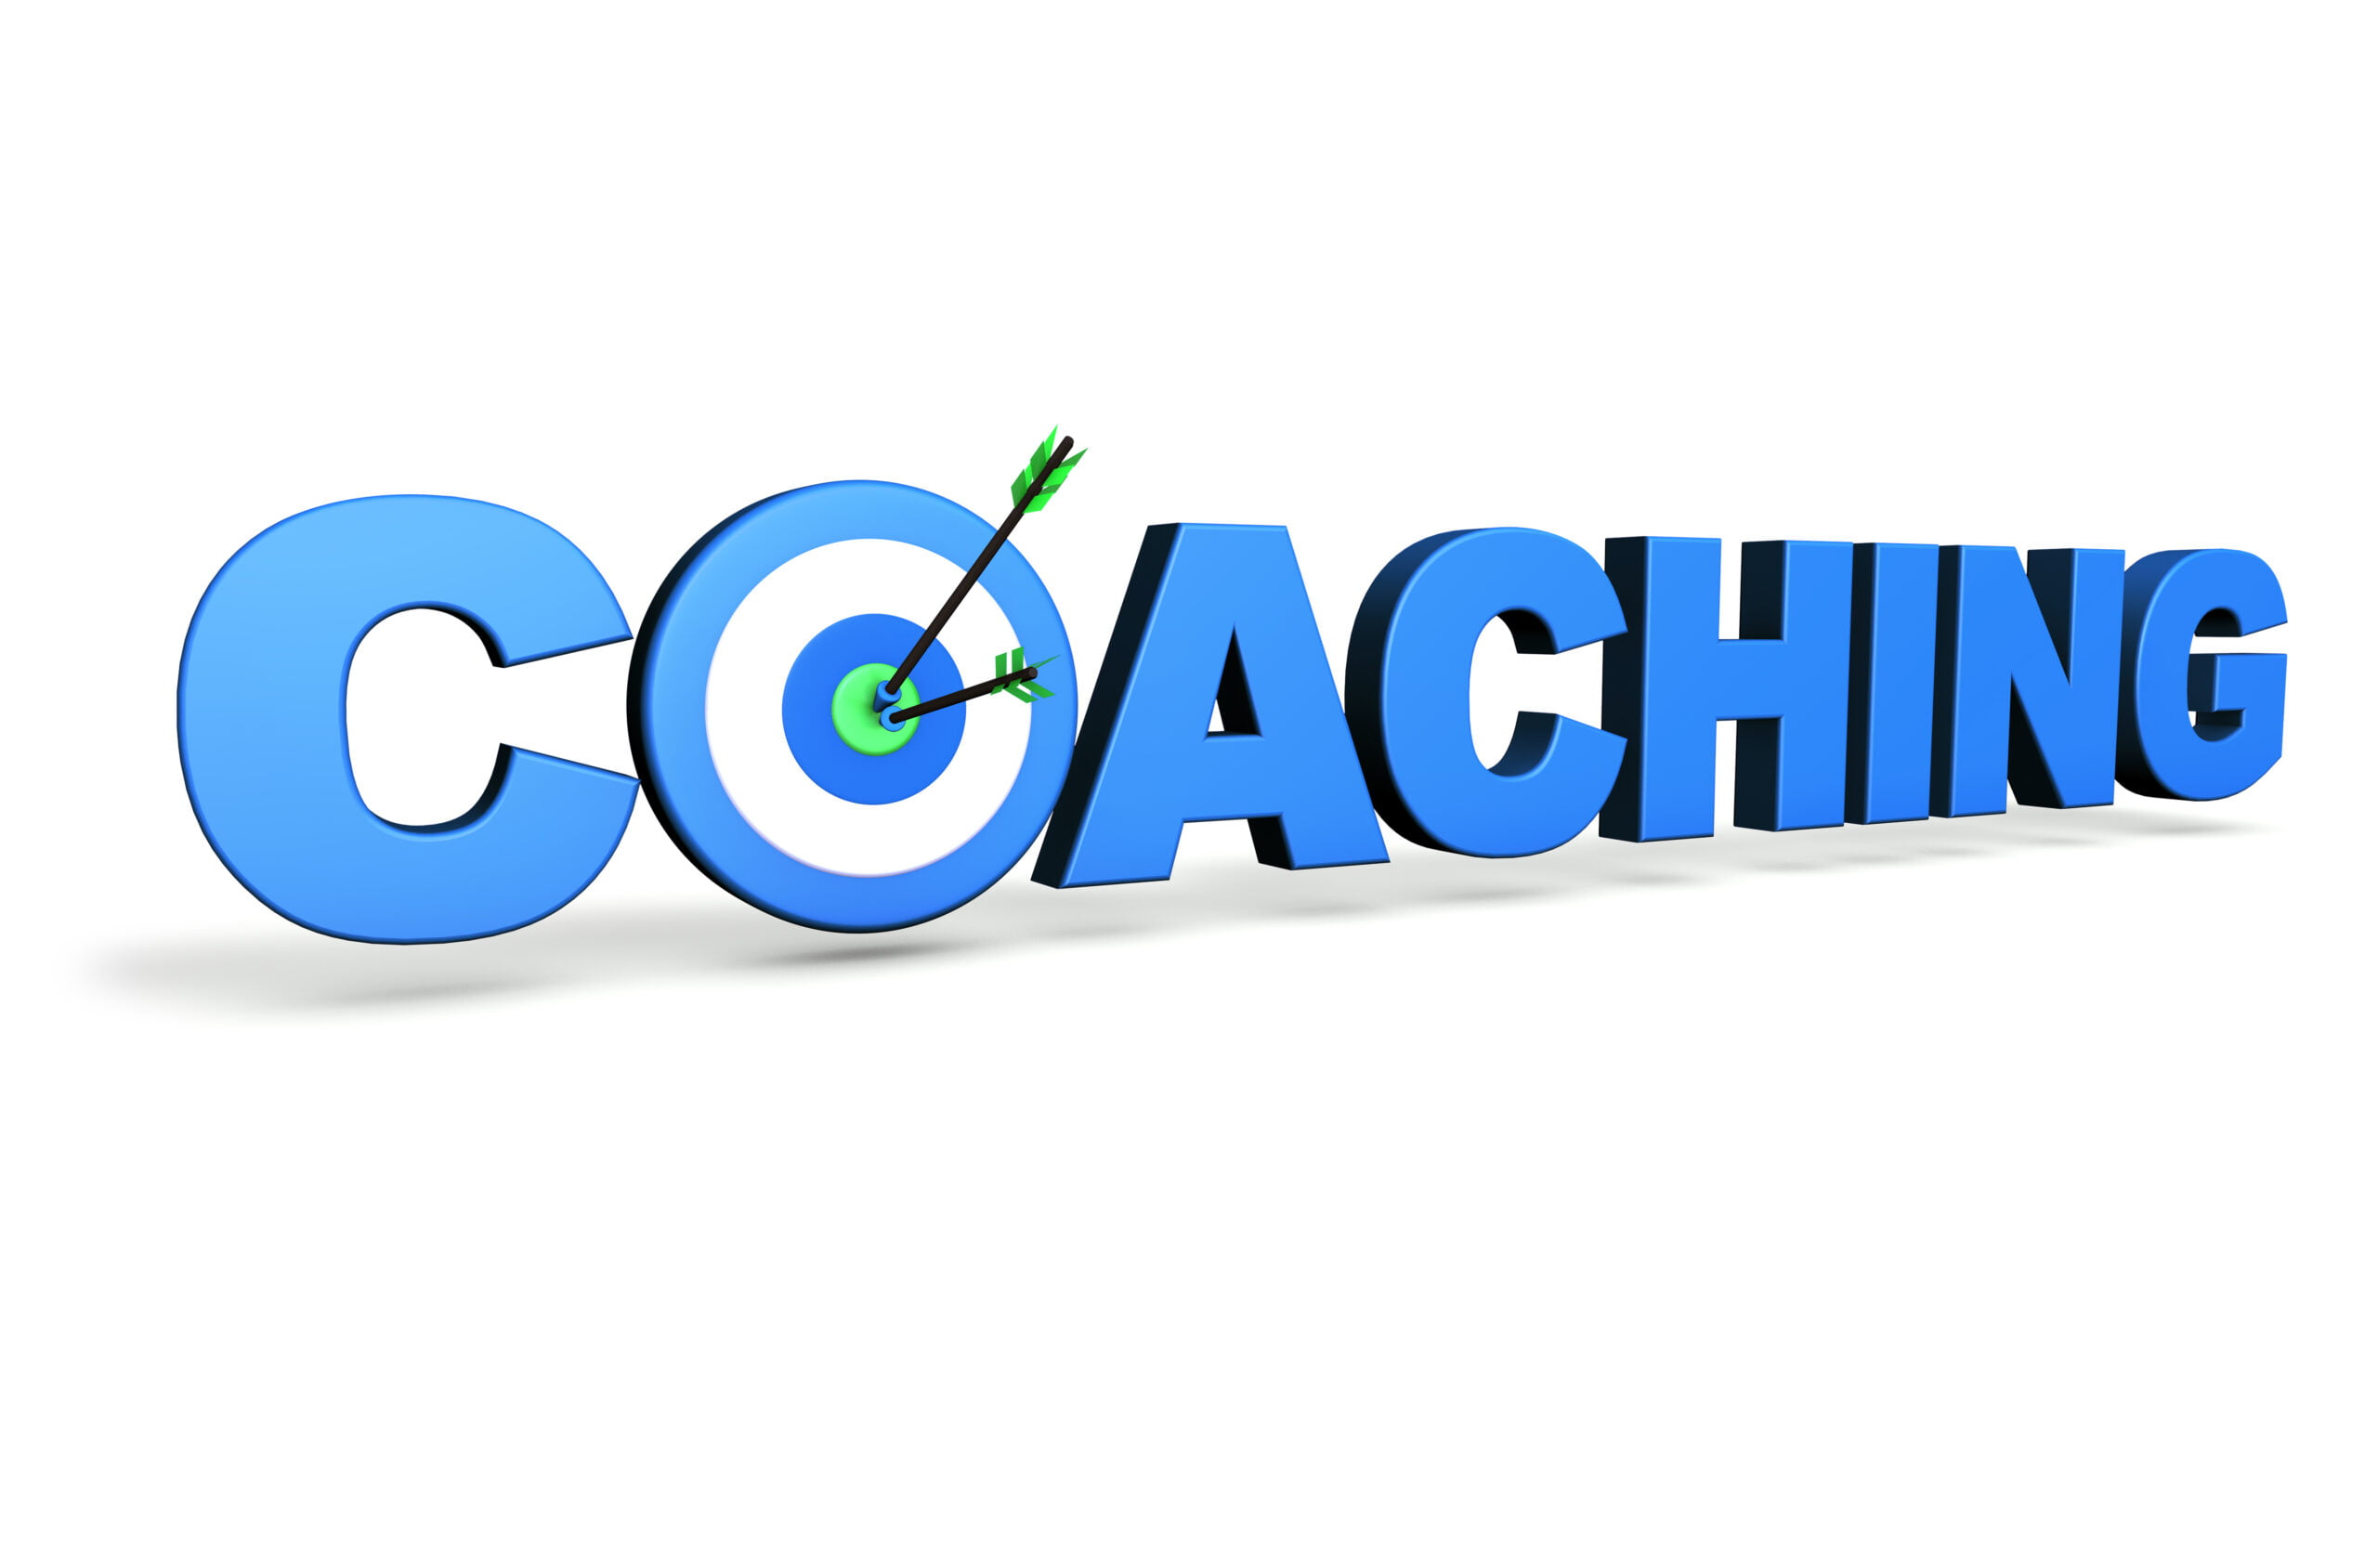 Hit the mark and business goals concept with blue coaching sign, target and arrows on white background.